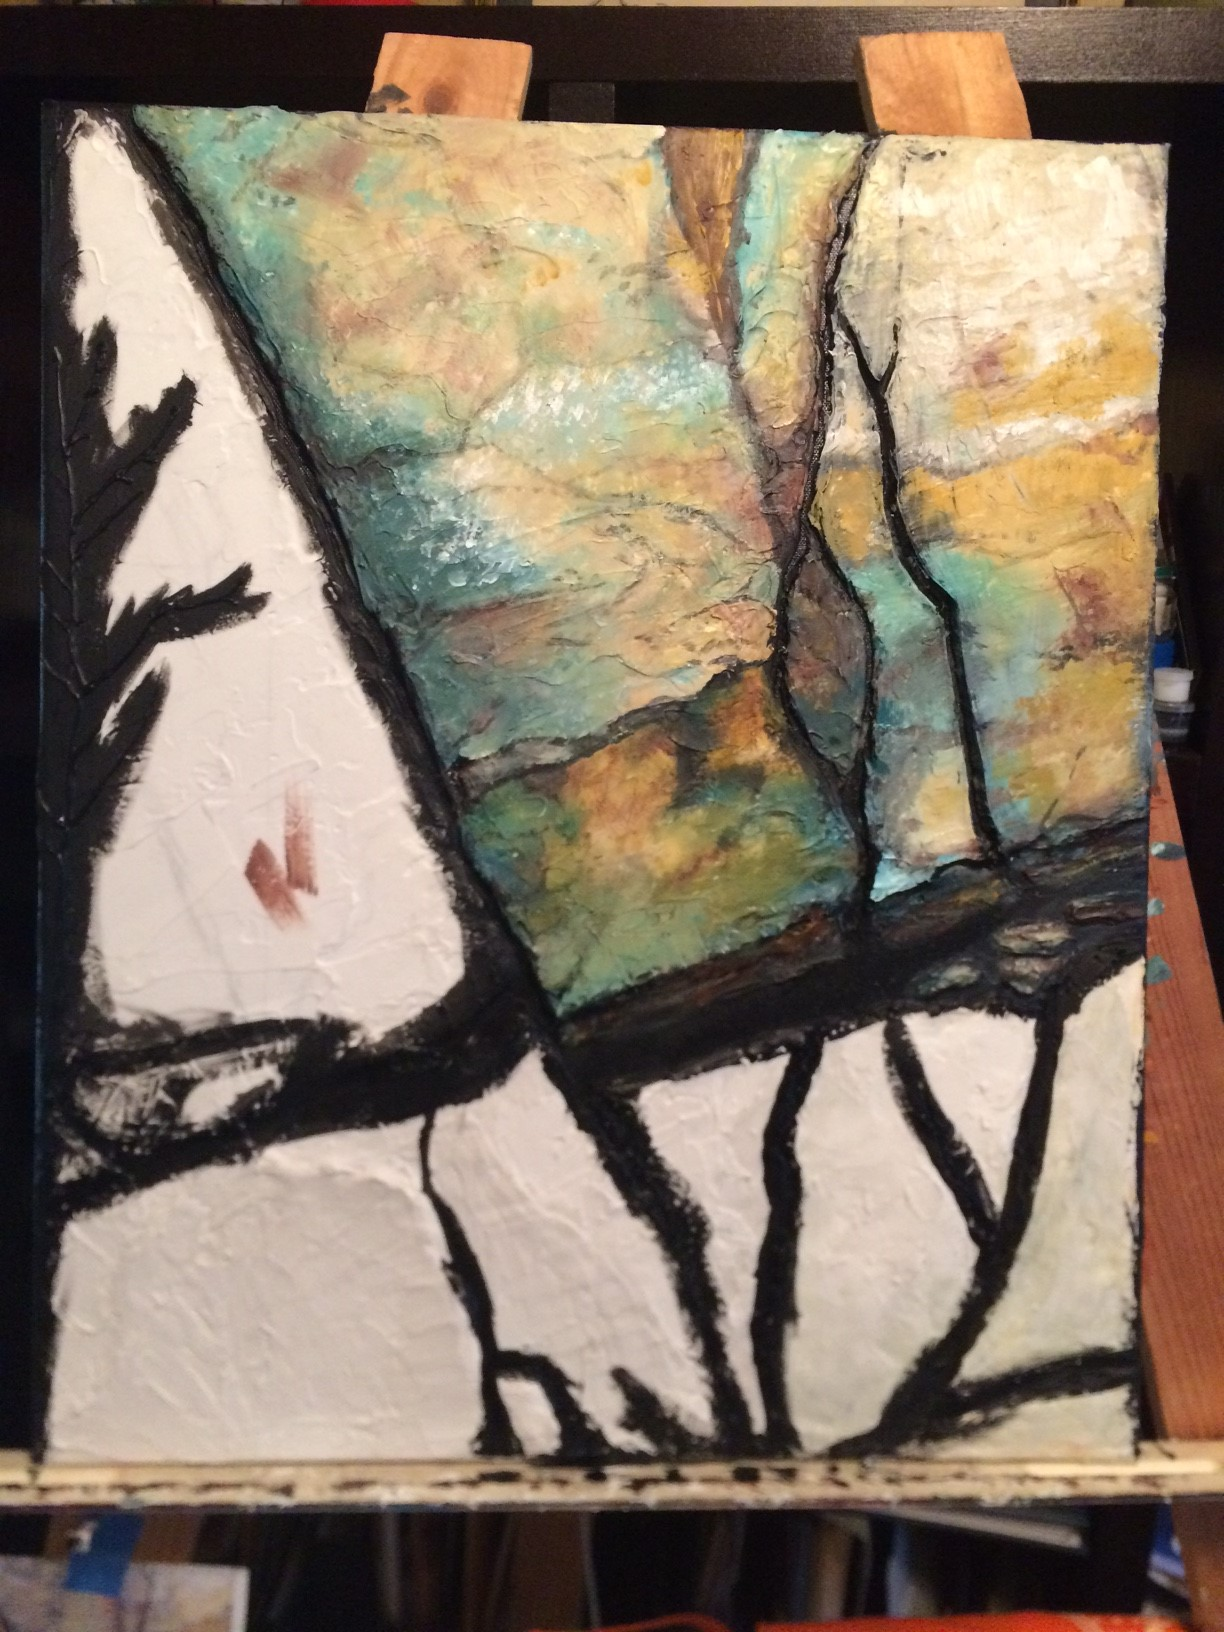 Apply modeling paste with a palette knife and begin painting